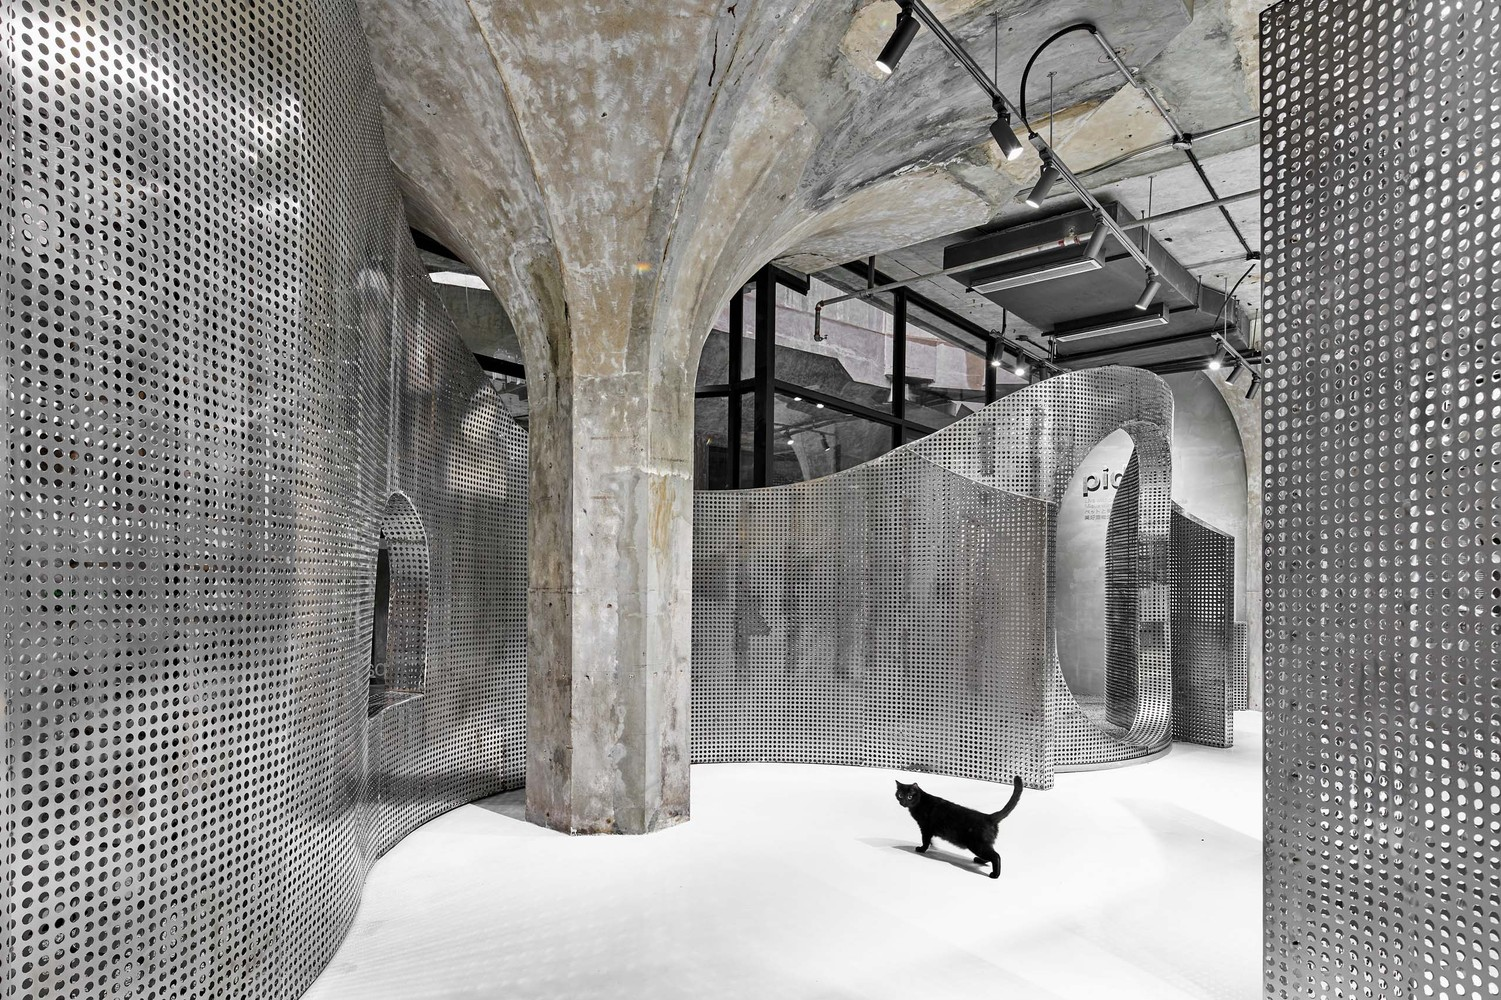 The Animal Backbone / I.F.S.E. SPACE CREATIVE LAB